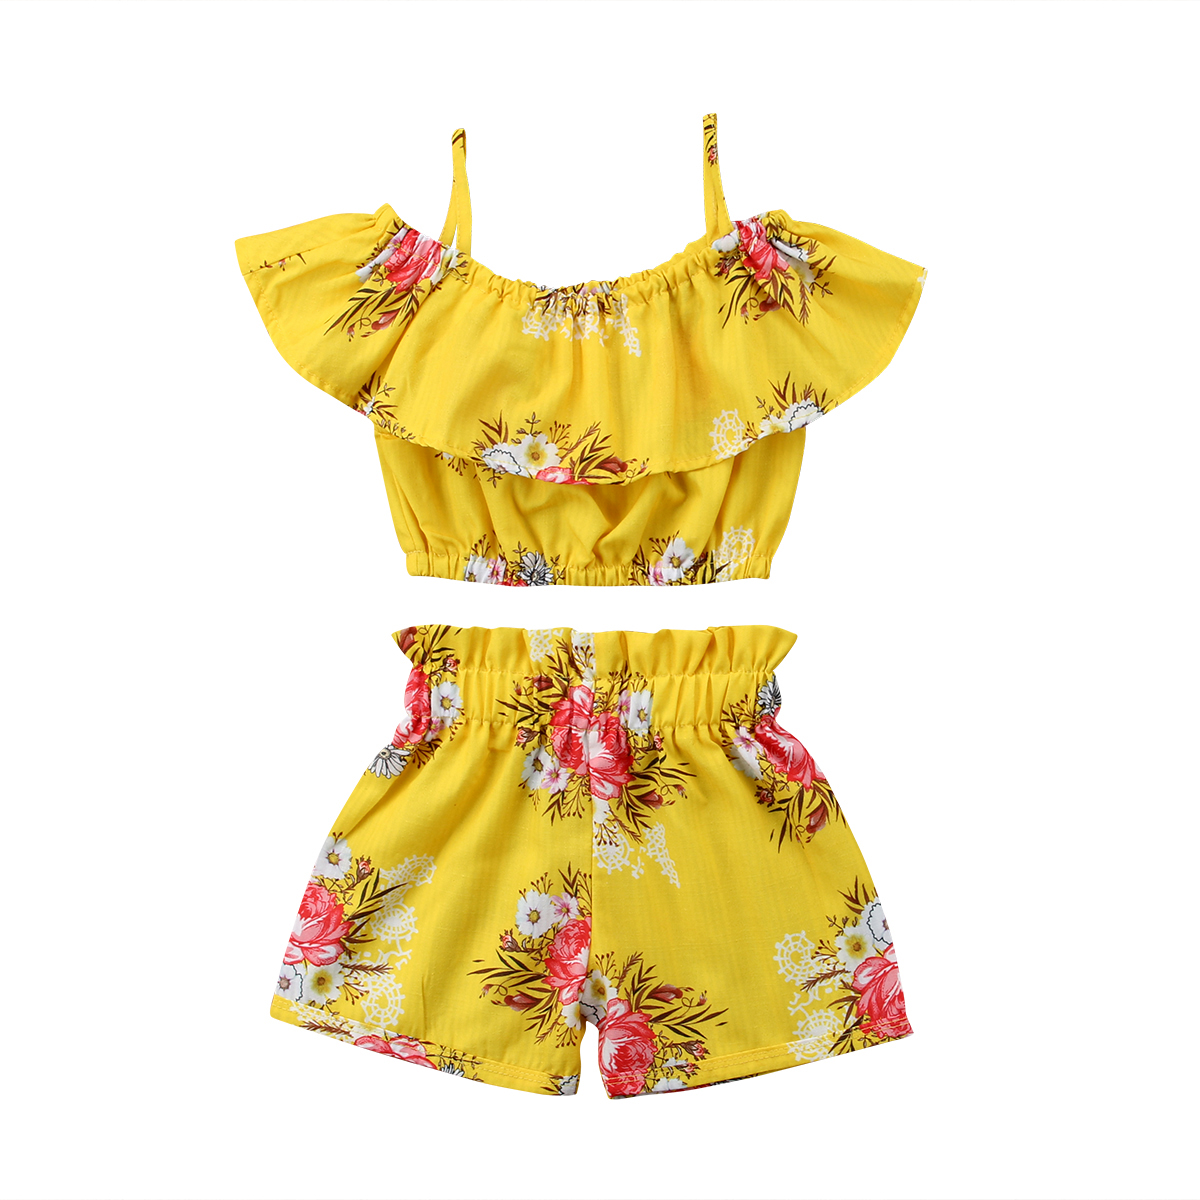 edd0f2c61d best top 10 yellow outfit for toddler girl list and get free ...